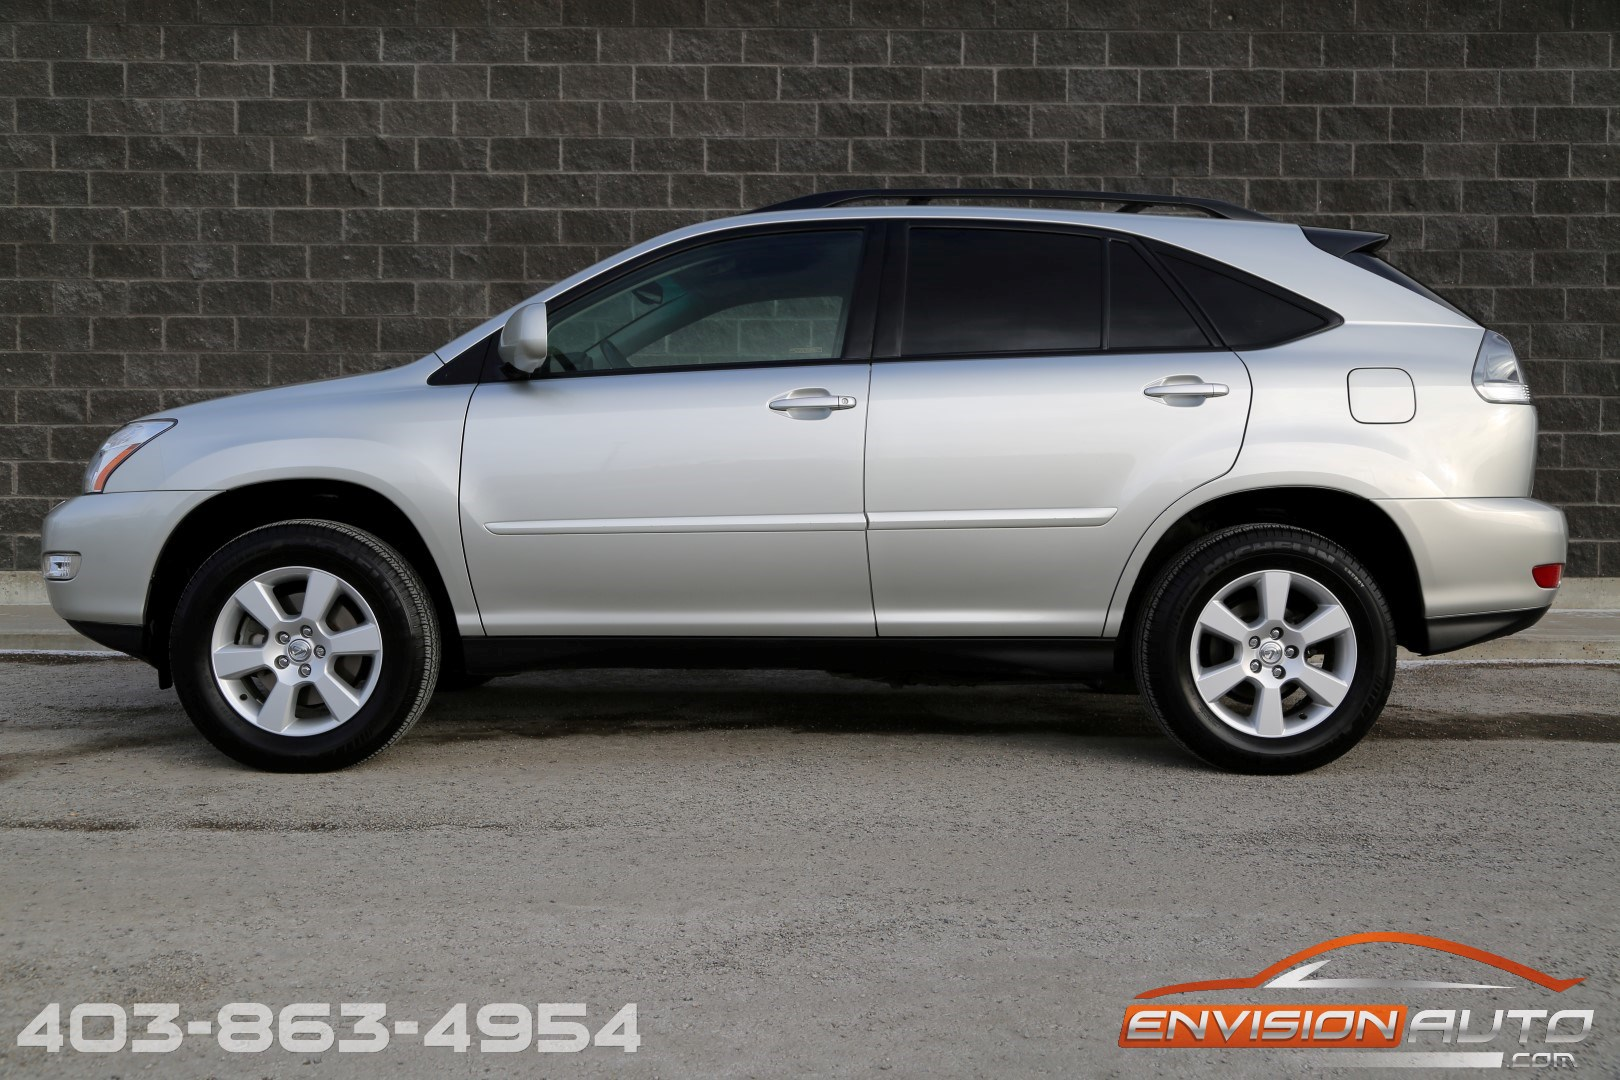 2005 lexus rx330 awd premium envision auto. Black Bedroom Furniture Sets. Home Design Ideas